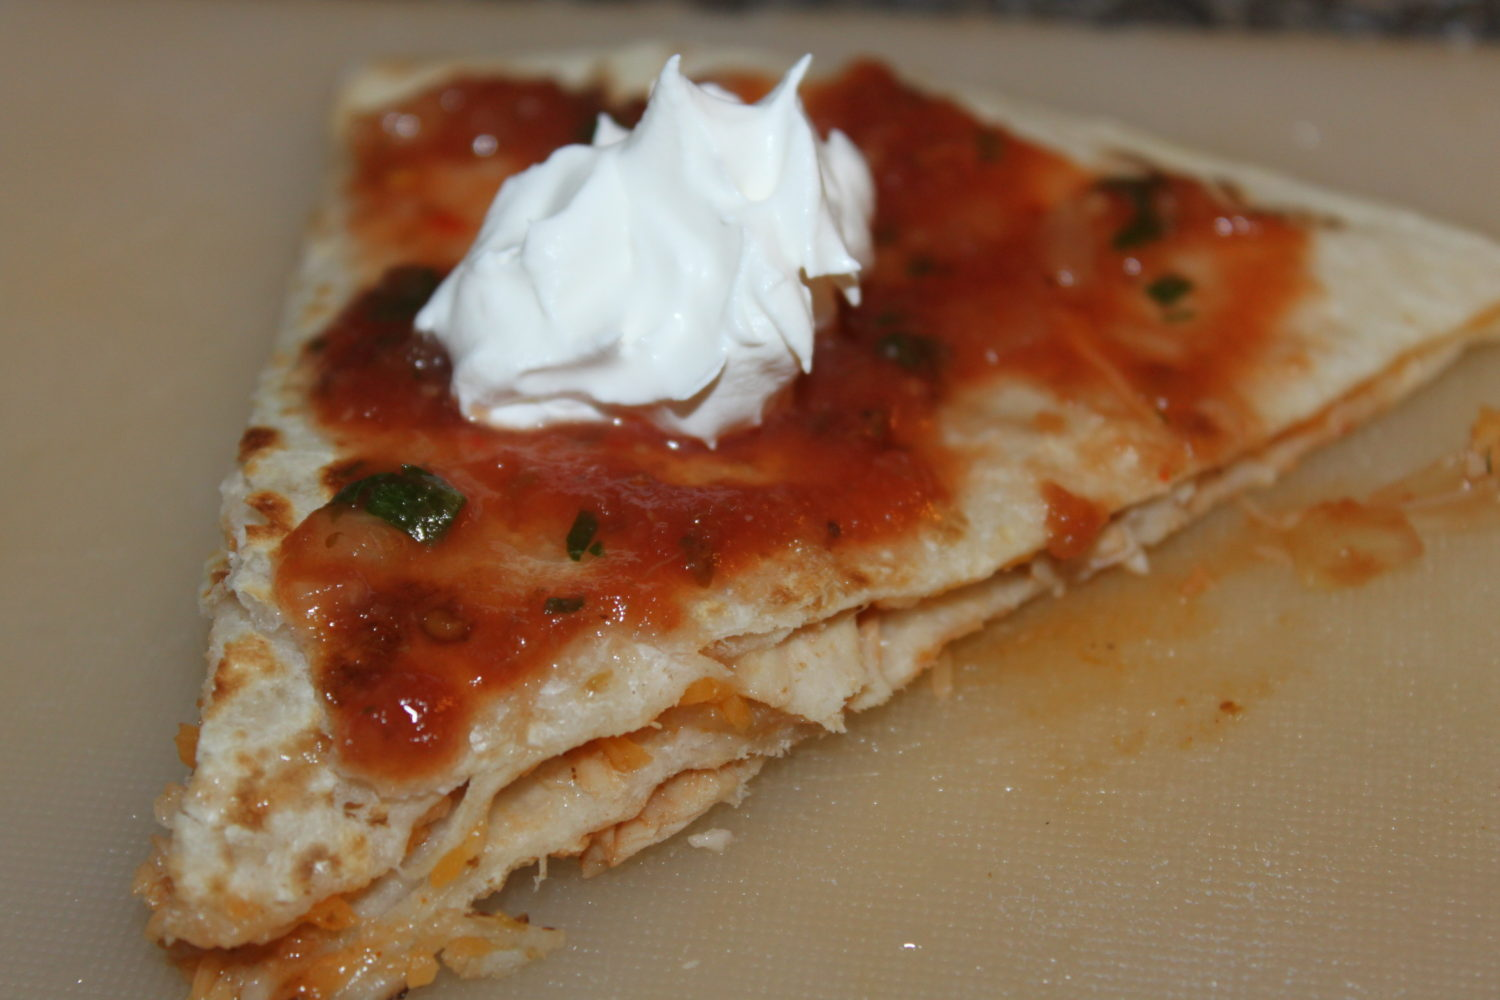 Barbecue Turkey Quesadilla Recipe – A Light and Easy Way To Use Your Leftover Turkey